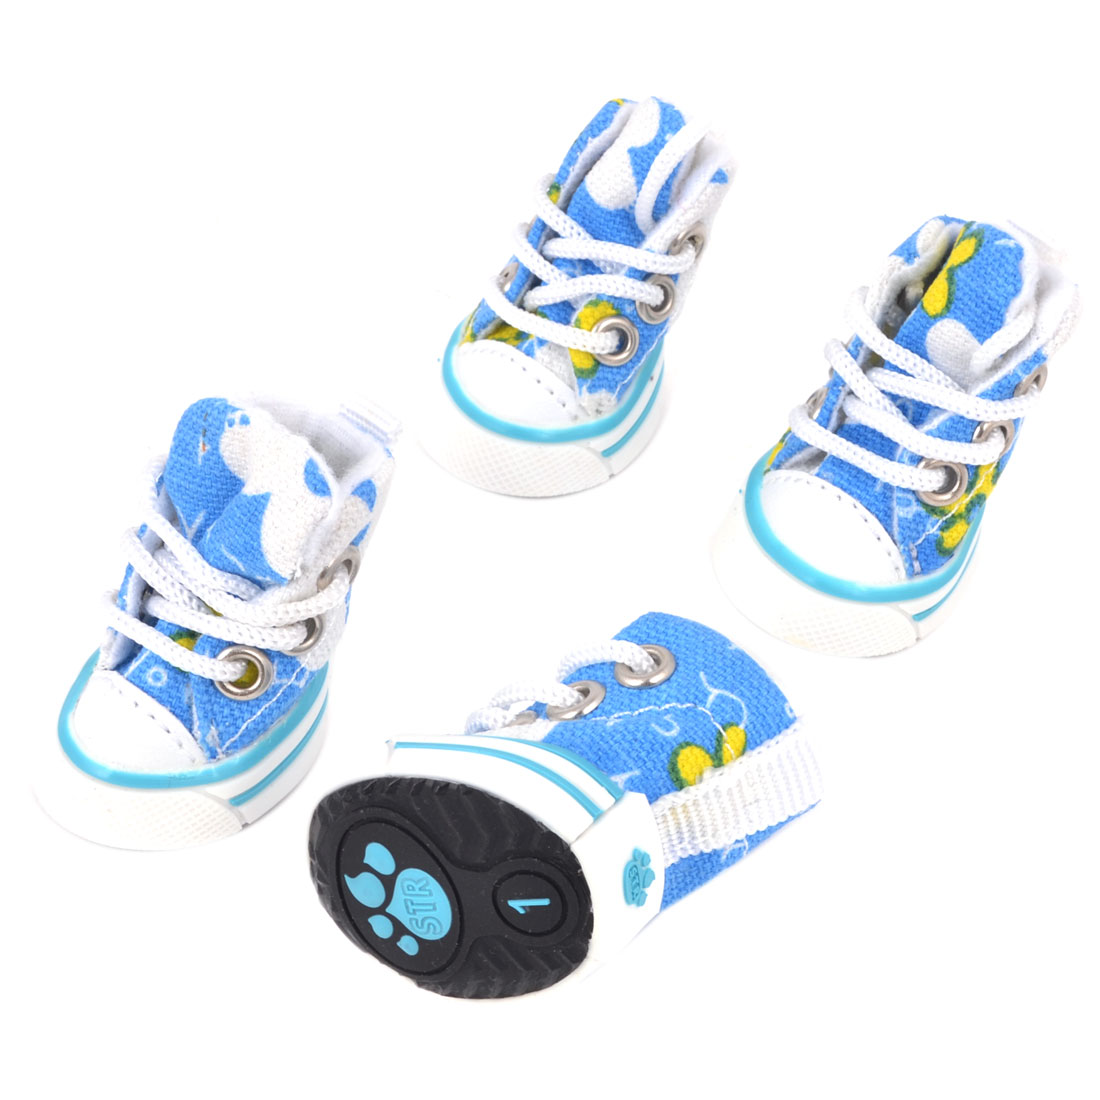 "2 Pairs Black Rubber Sole White Shoe String Blue 1.6"" High Canvas Pet Doggie Shoes Sneakers Size 1 XS"